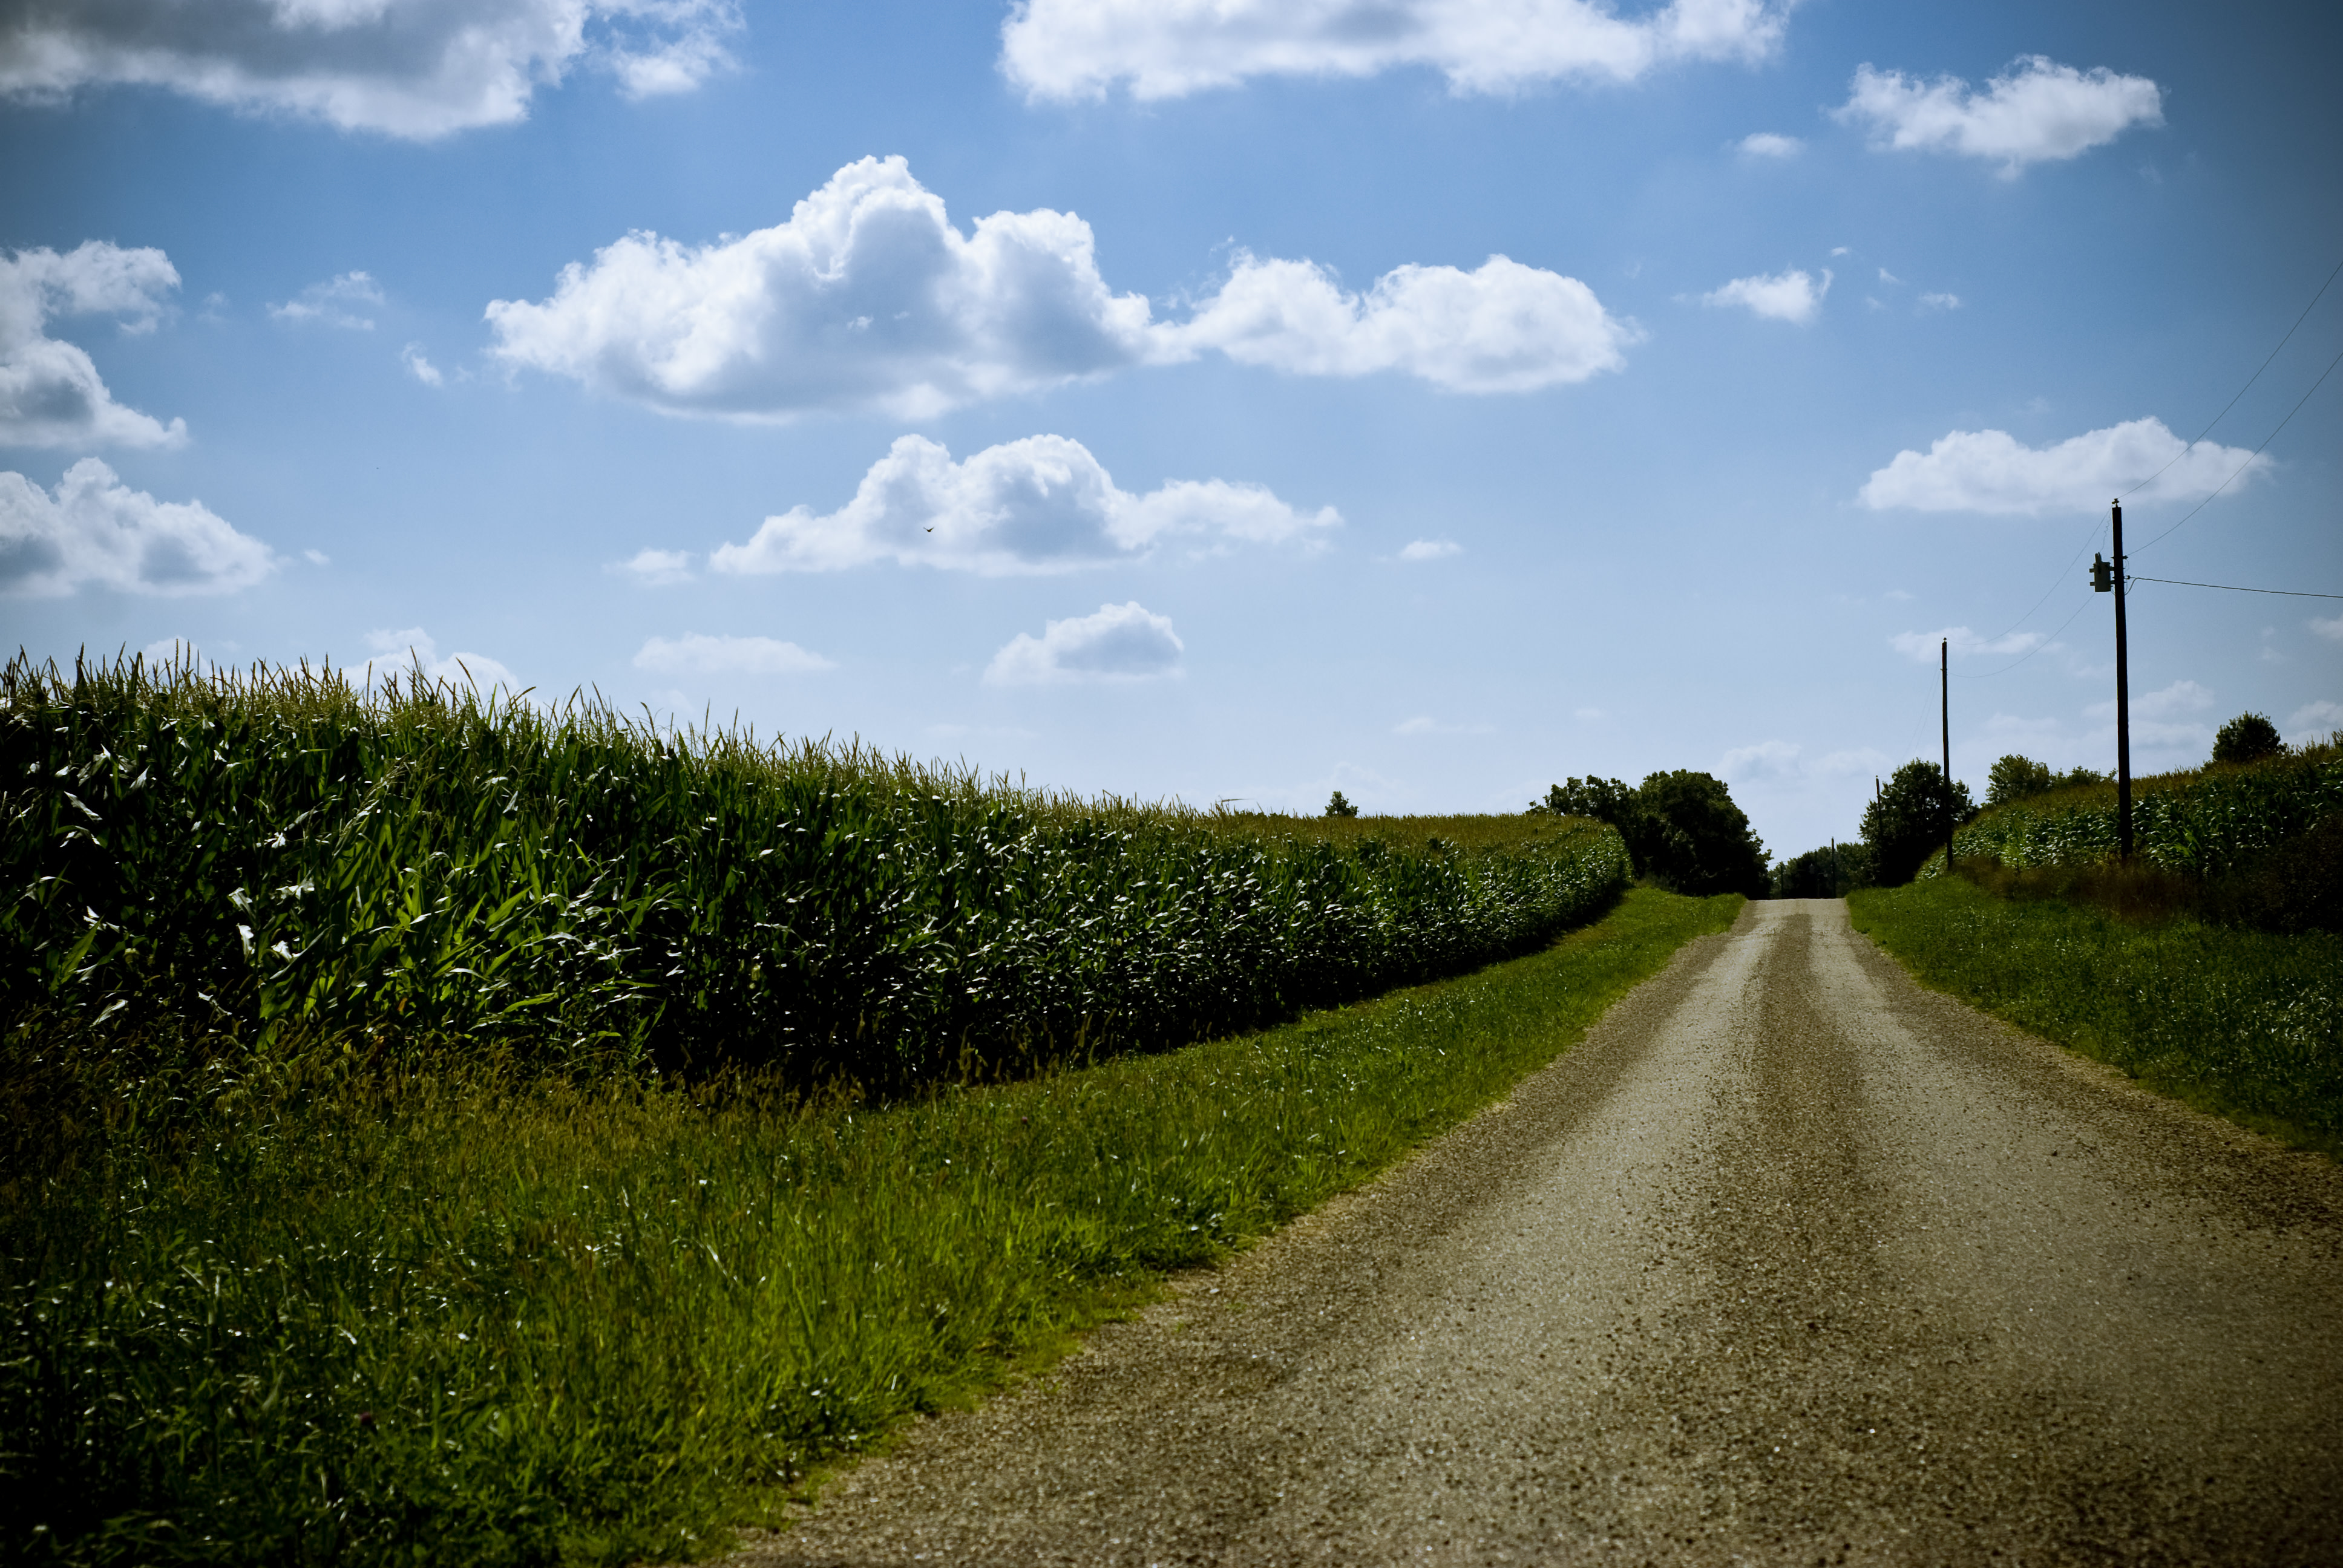 A dirt road next to cornfields on a sunny day. The sky is filled with puffy clouds.